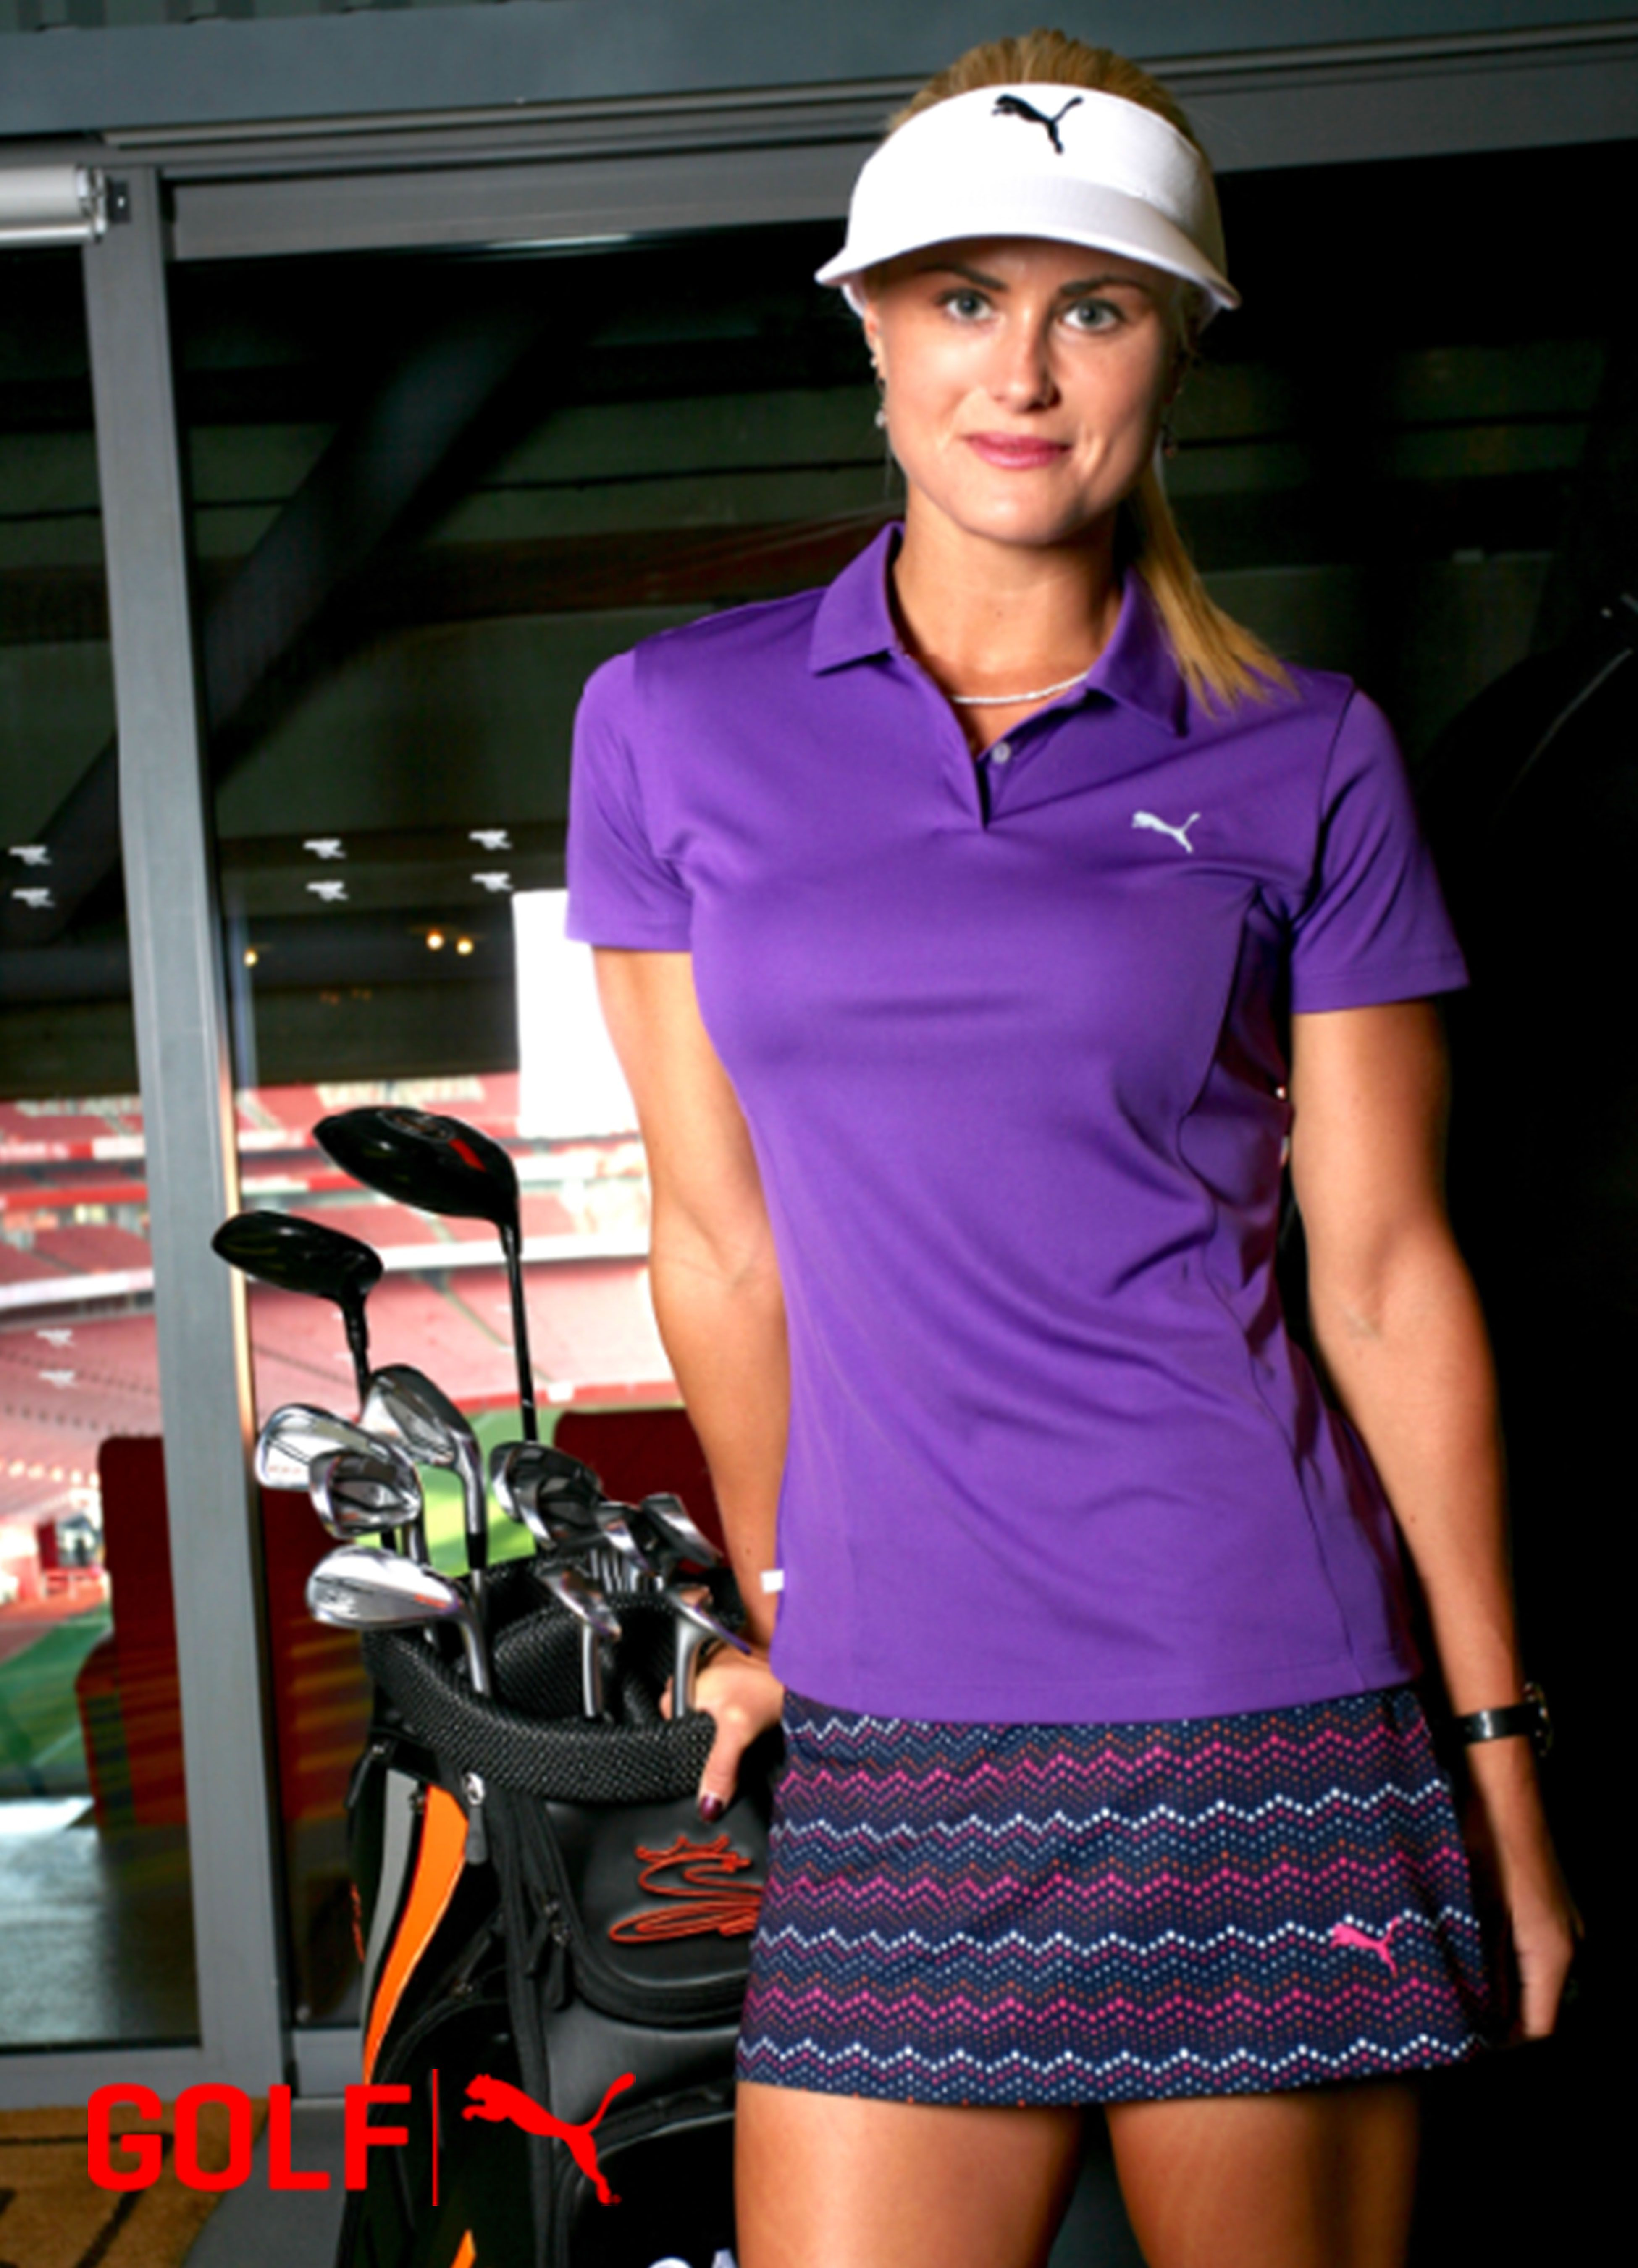 d3a4fc2f501e Carly Booth Cobra & Puma Spring/Summer'17 Look | Her Golf Style ...